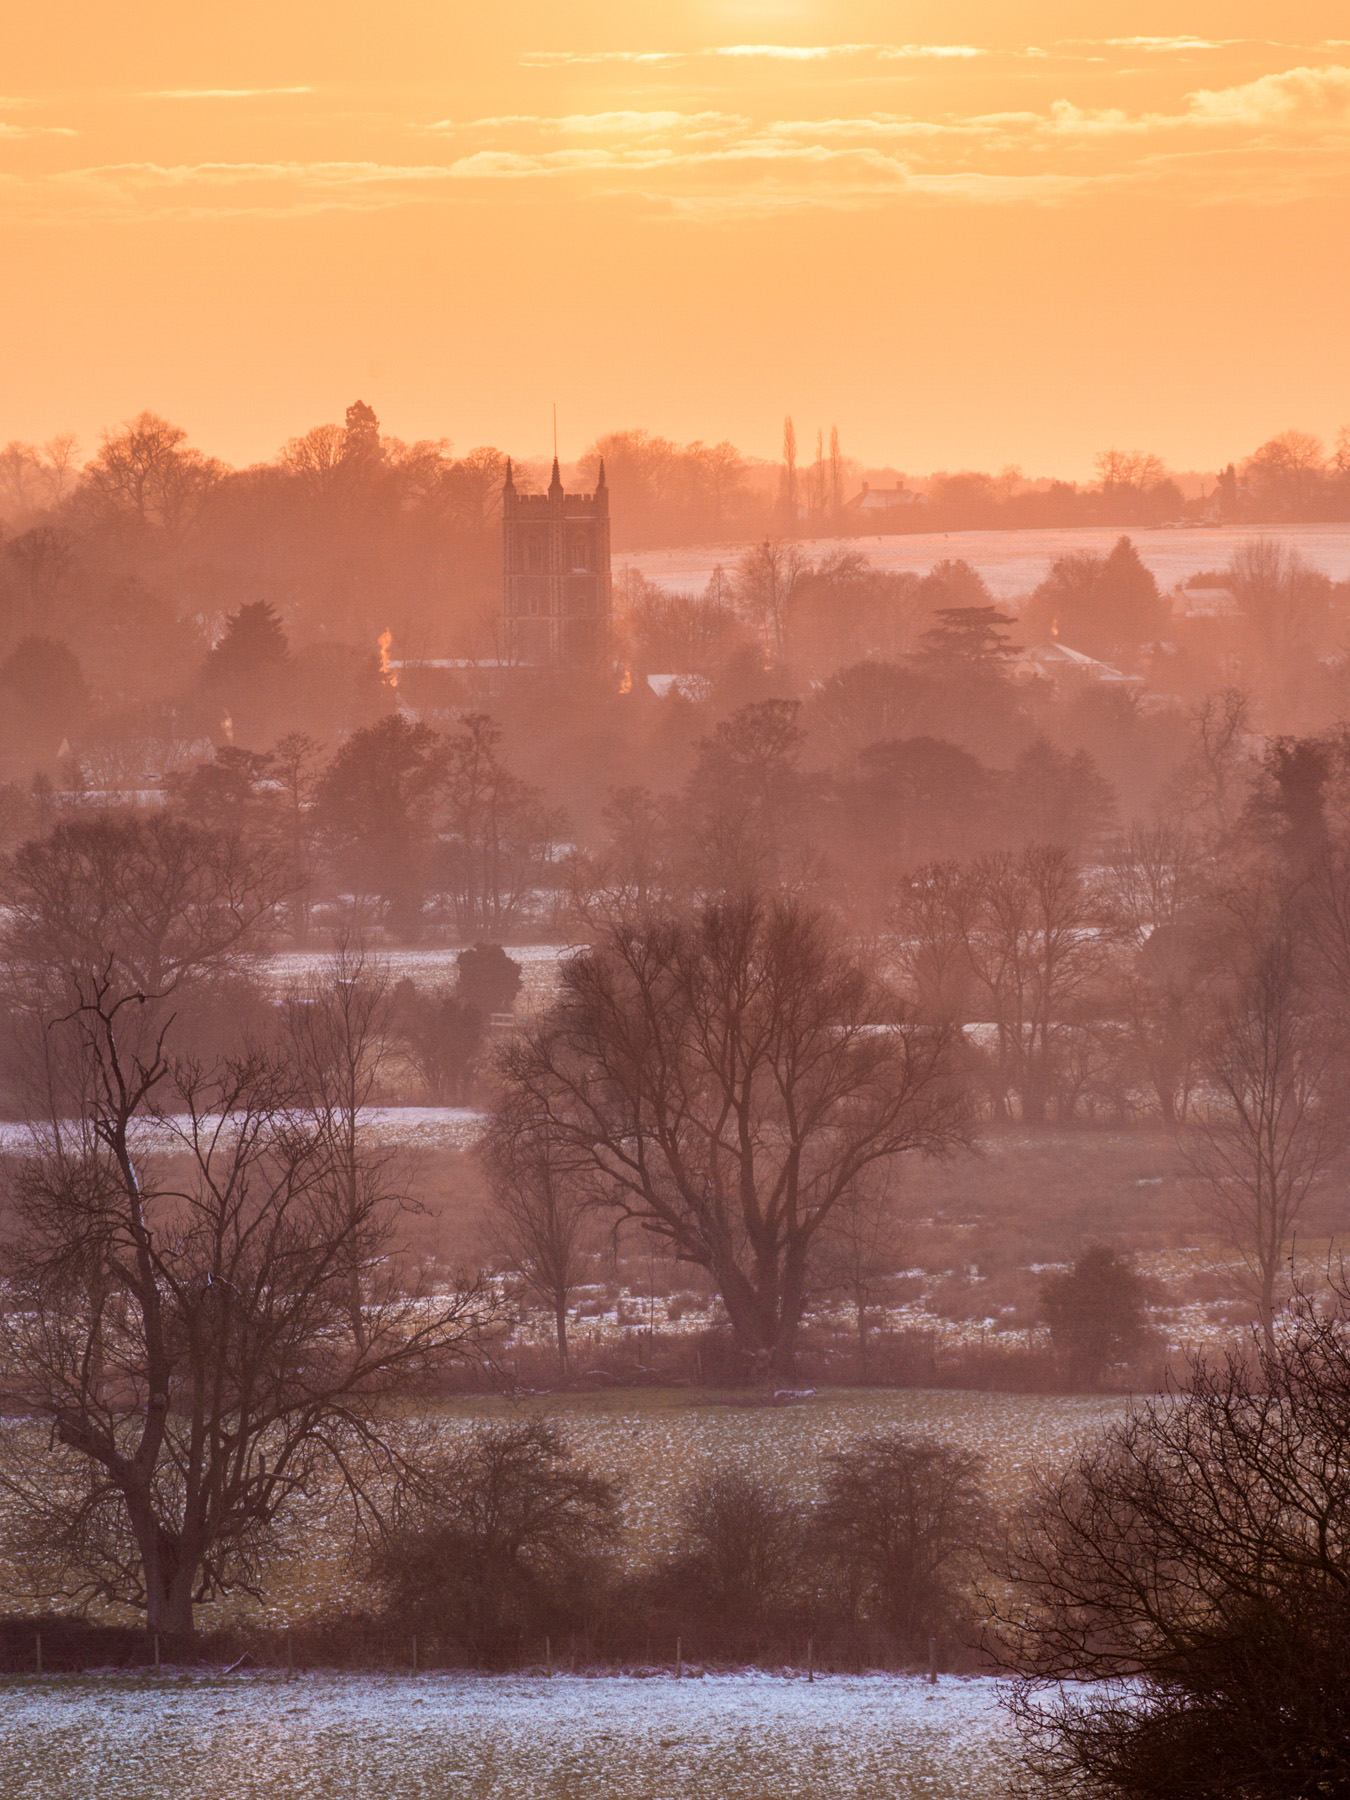 The view across the Stour valley to Dedham church. Canon 5D MkII,Canon 70-200mm f/4 at 163mm, ISO 100, 1/20s at f/11, tripod. © Justin Minns